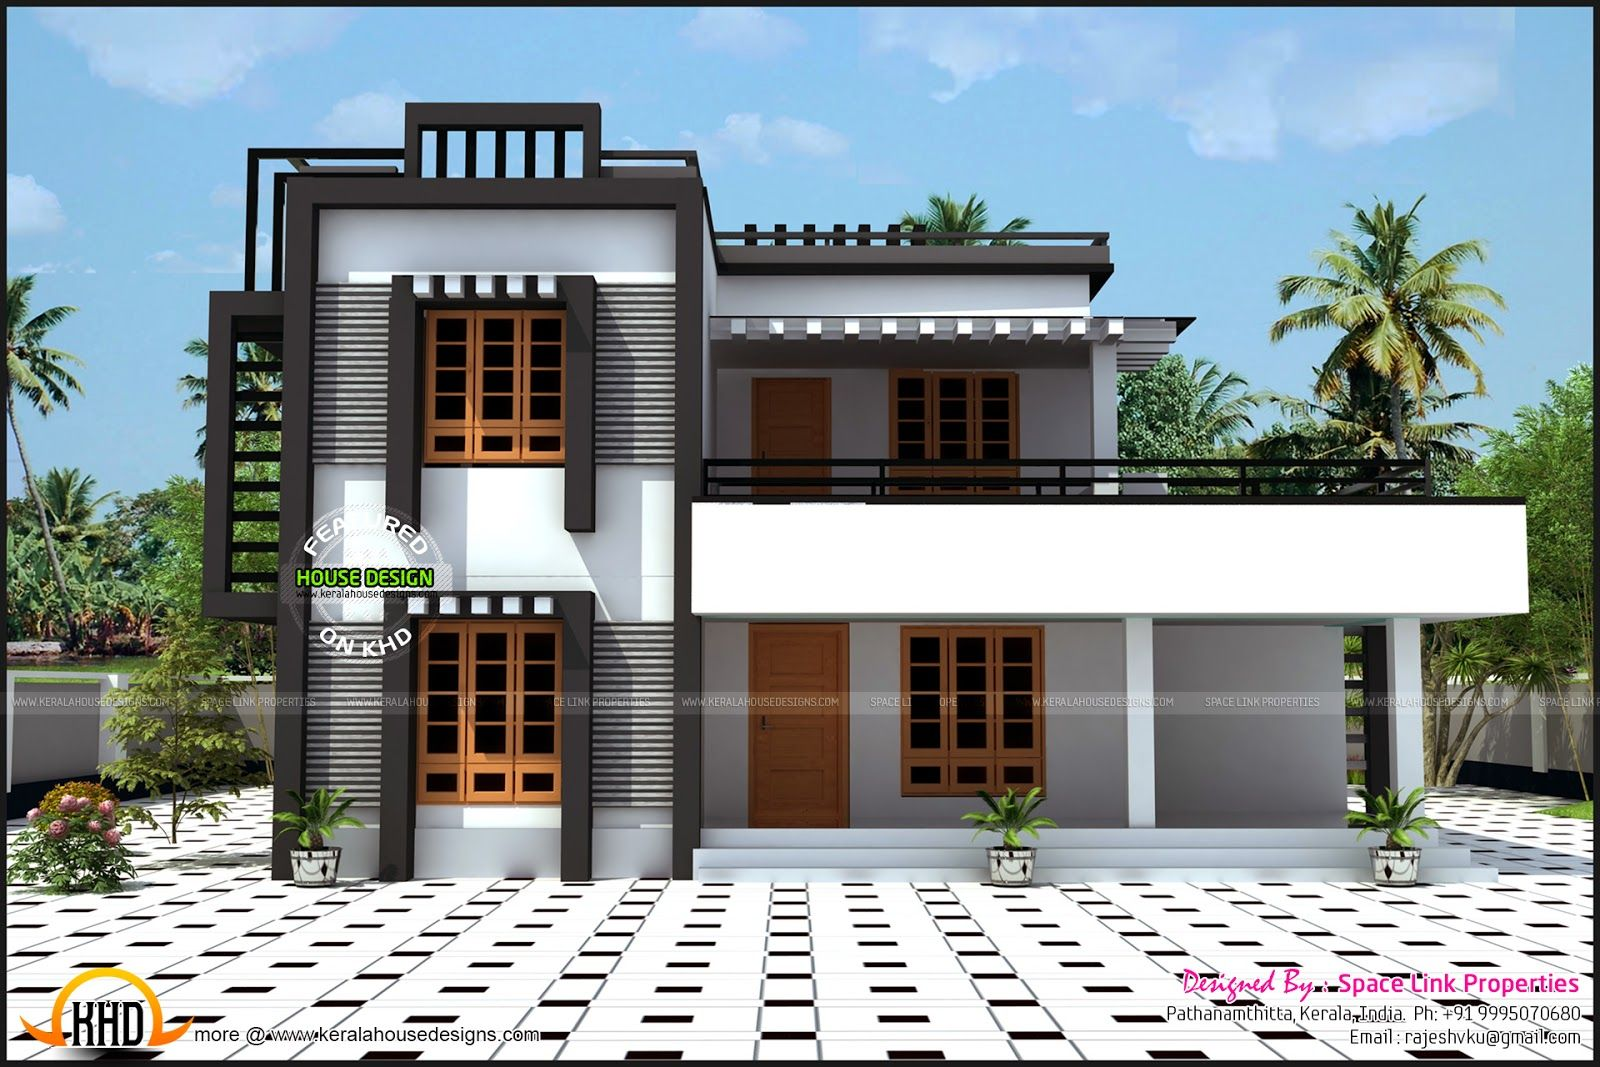 2148 sq ft flat roof house in kollam kerala architecture pinterest flat roof and architecture